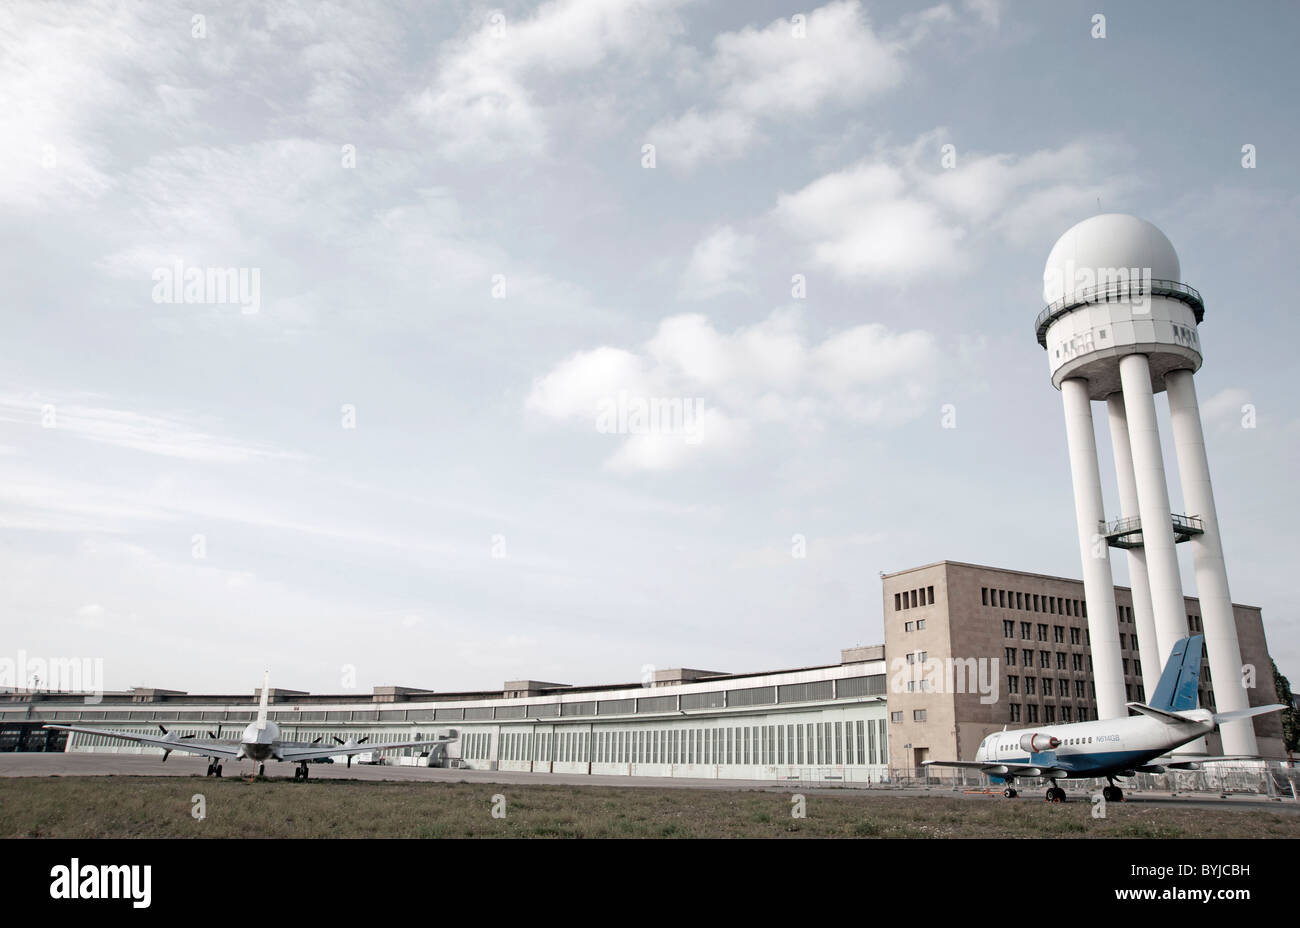 Historic airplanes and buildings at new city public Tempelhofer Park on site of famous former Tempelhof Airport - Stock Image